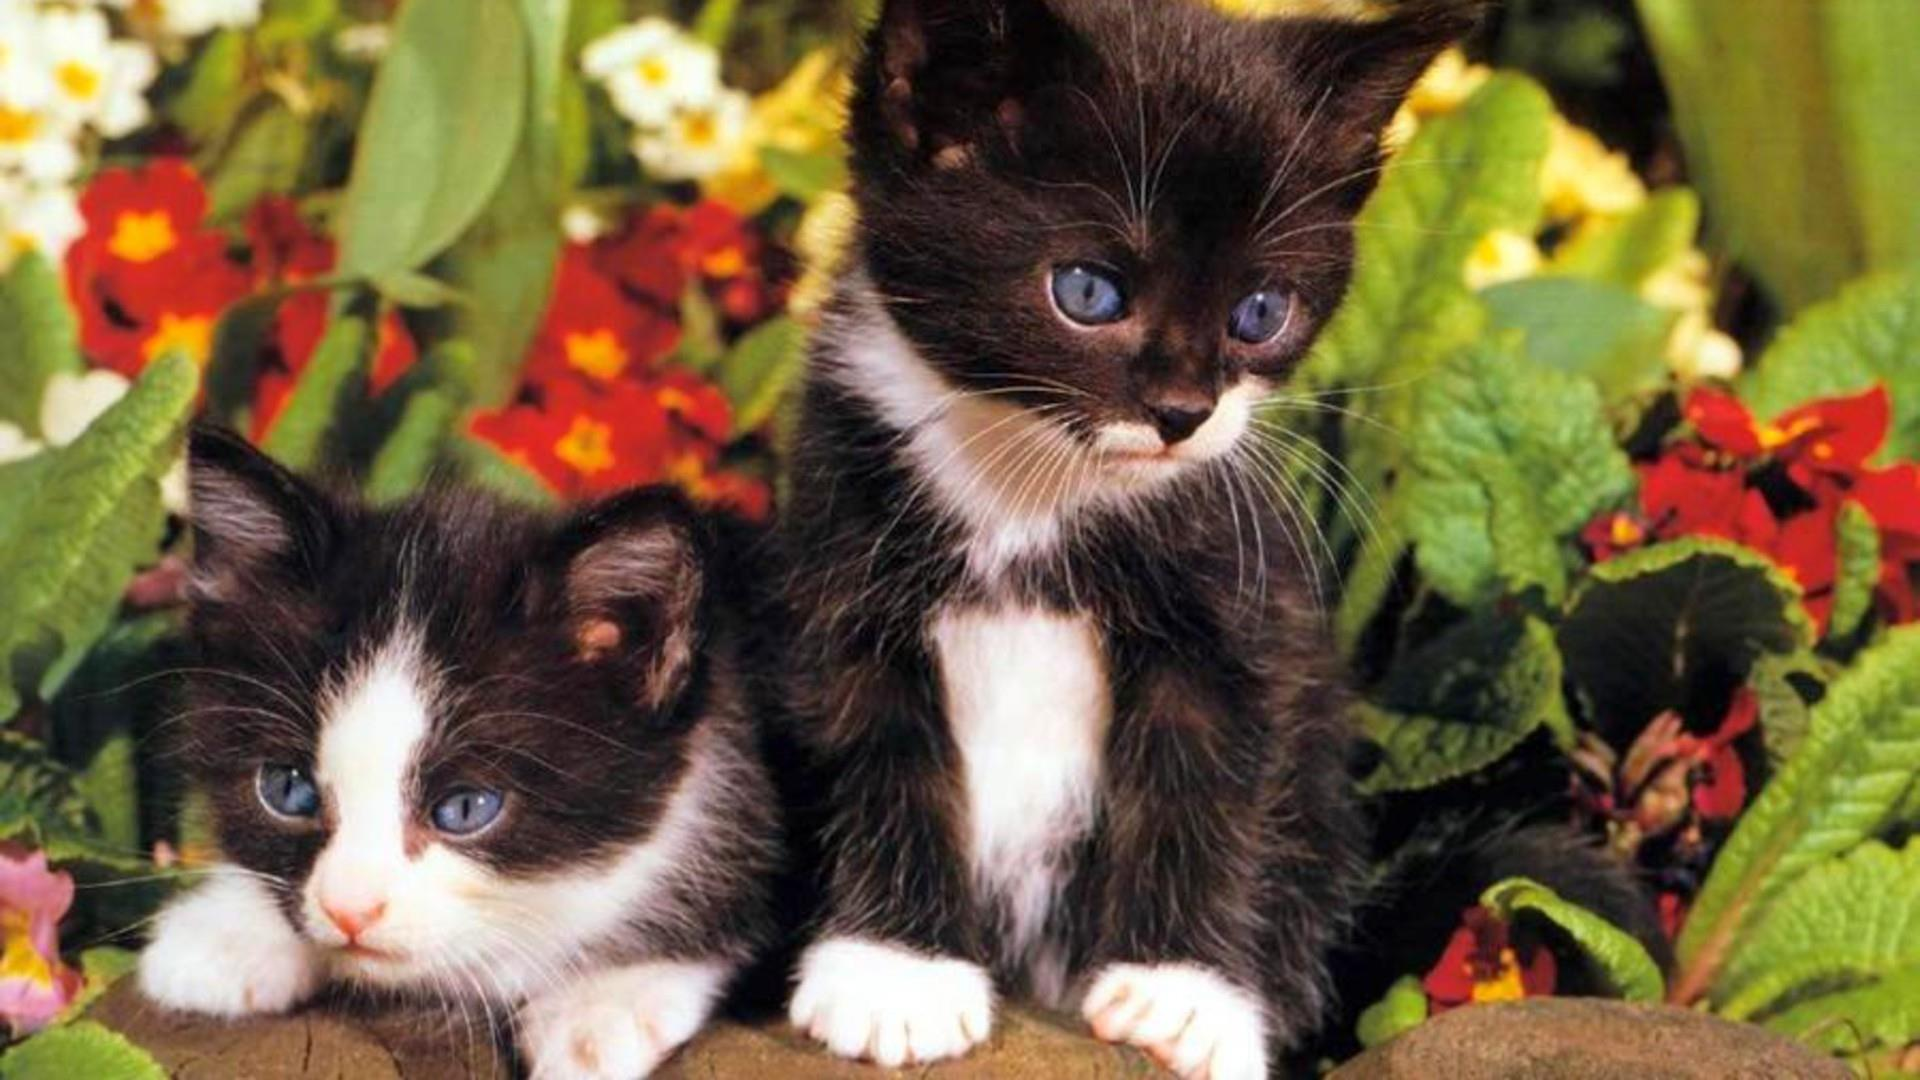 Cute Black and White Kittens